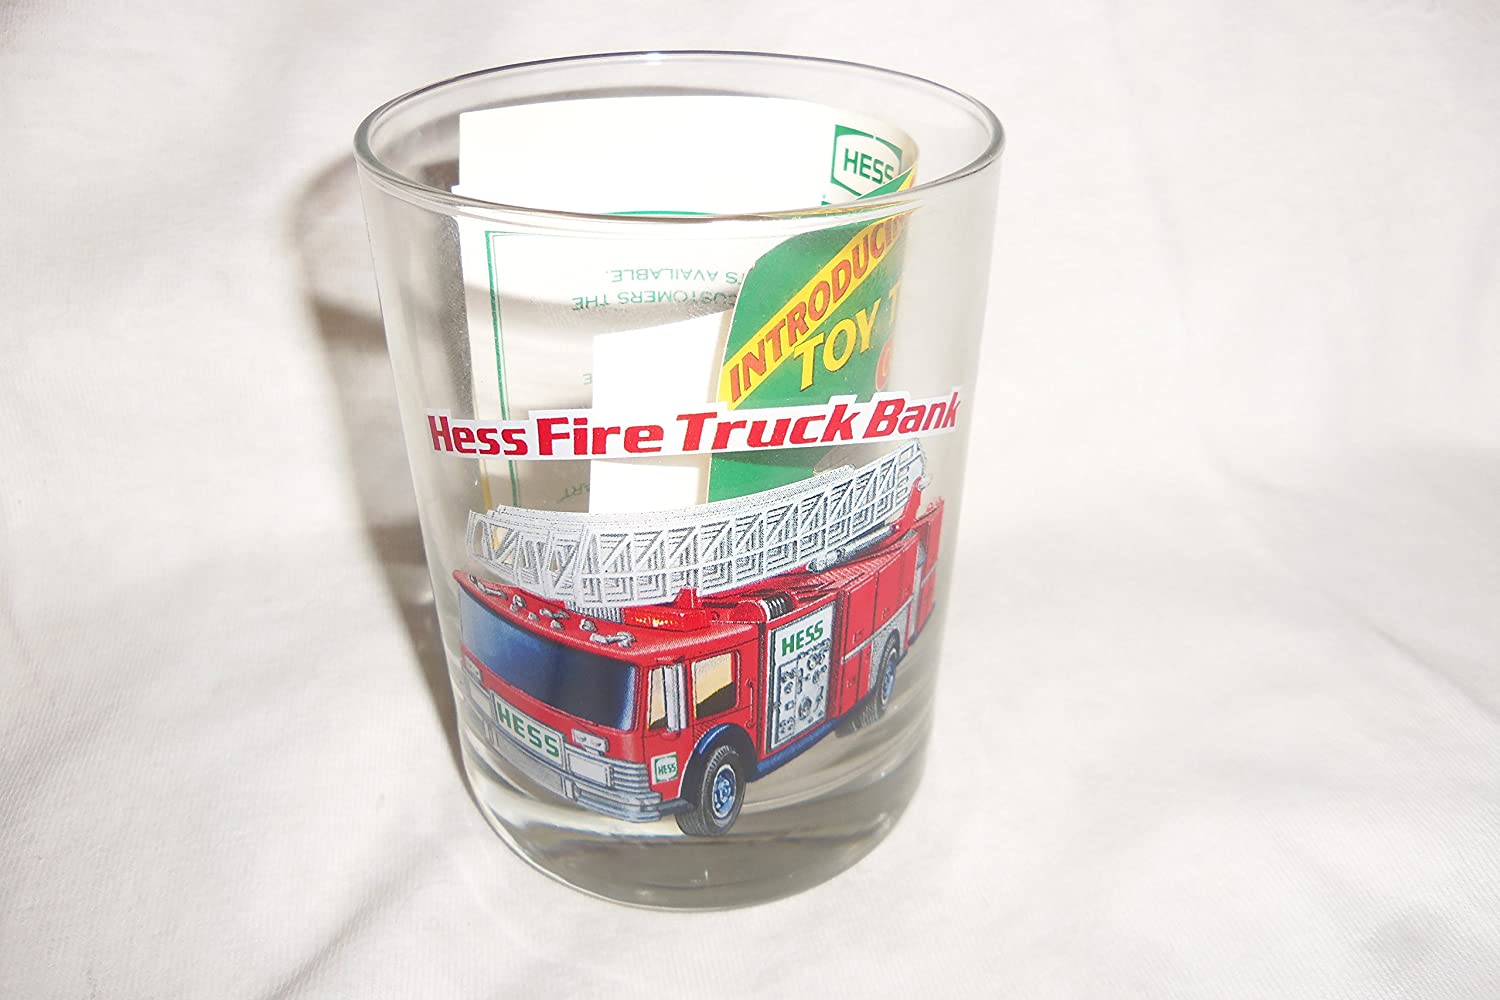 Hess 1996 Classic Truck Series Glass 1986 Hess Firetruck Bank Exclusive